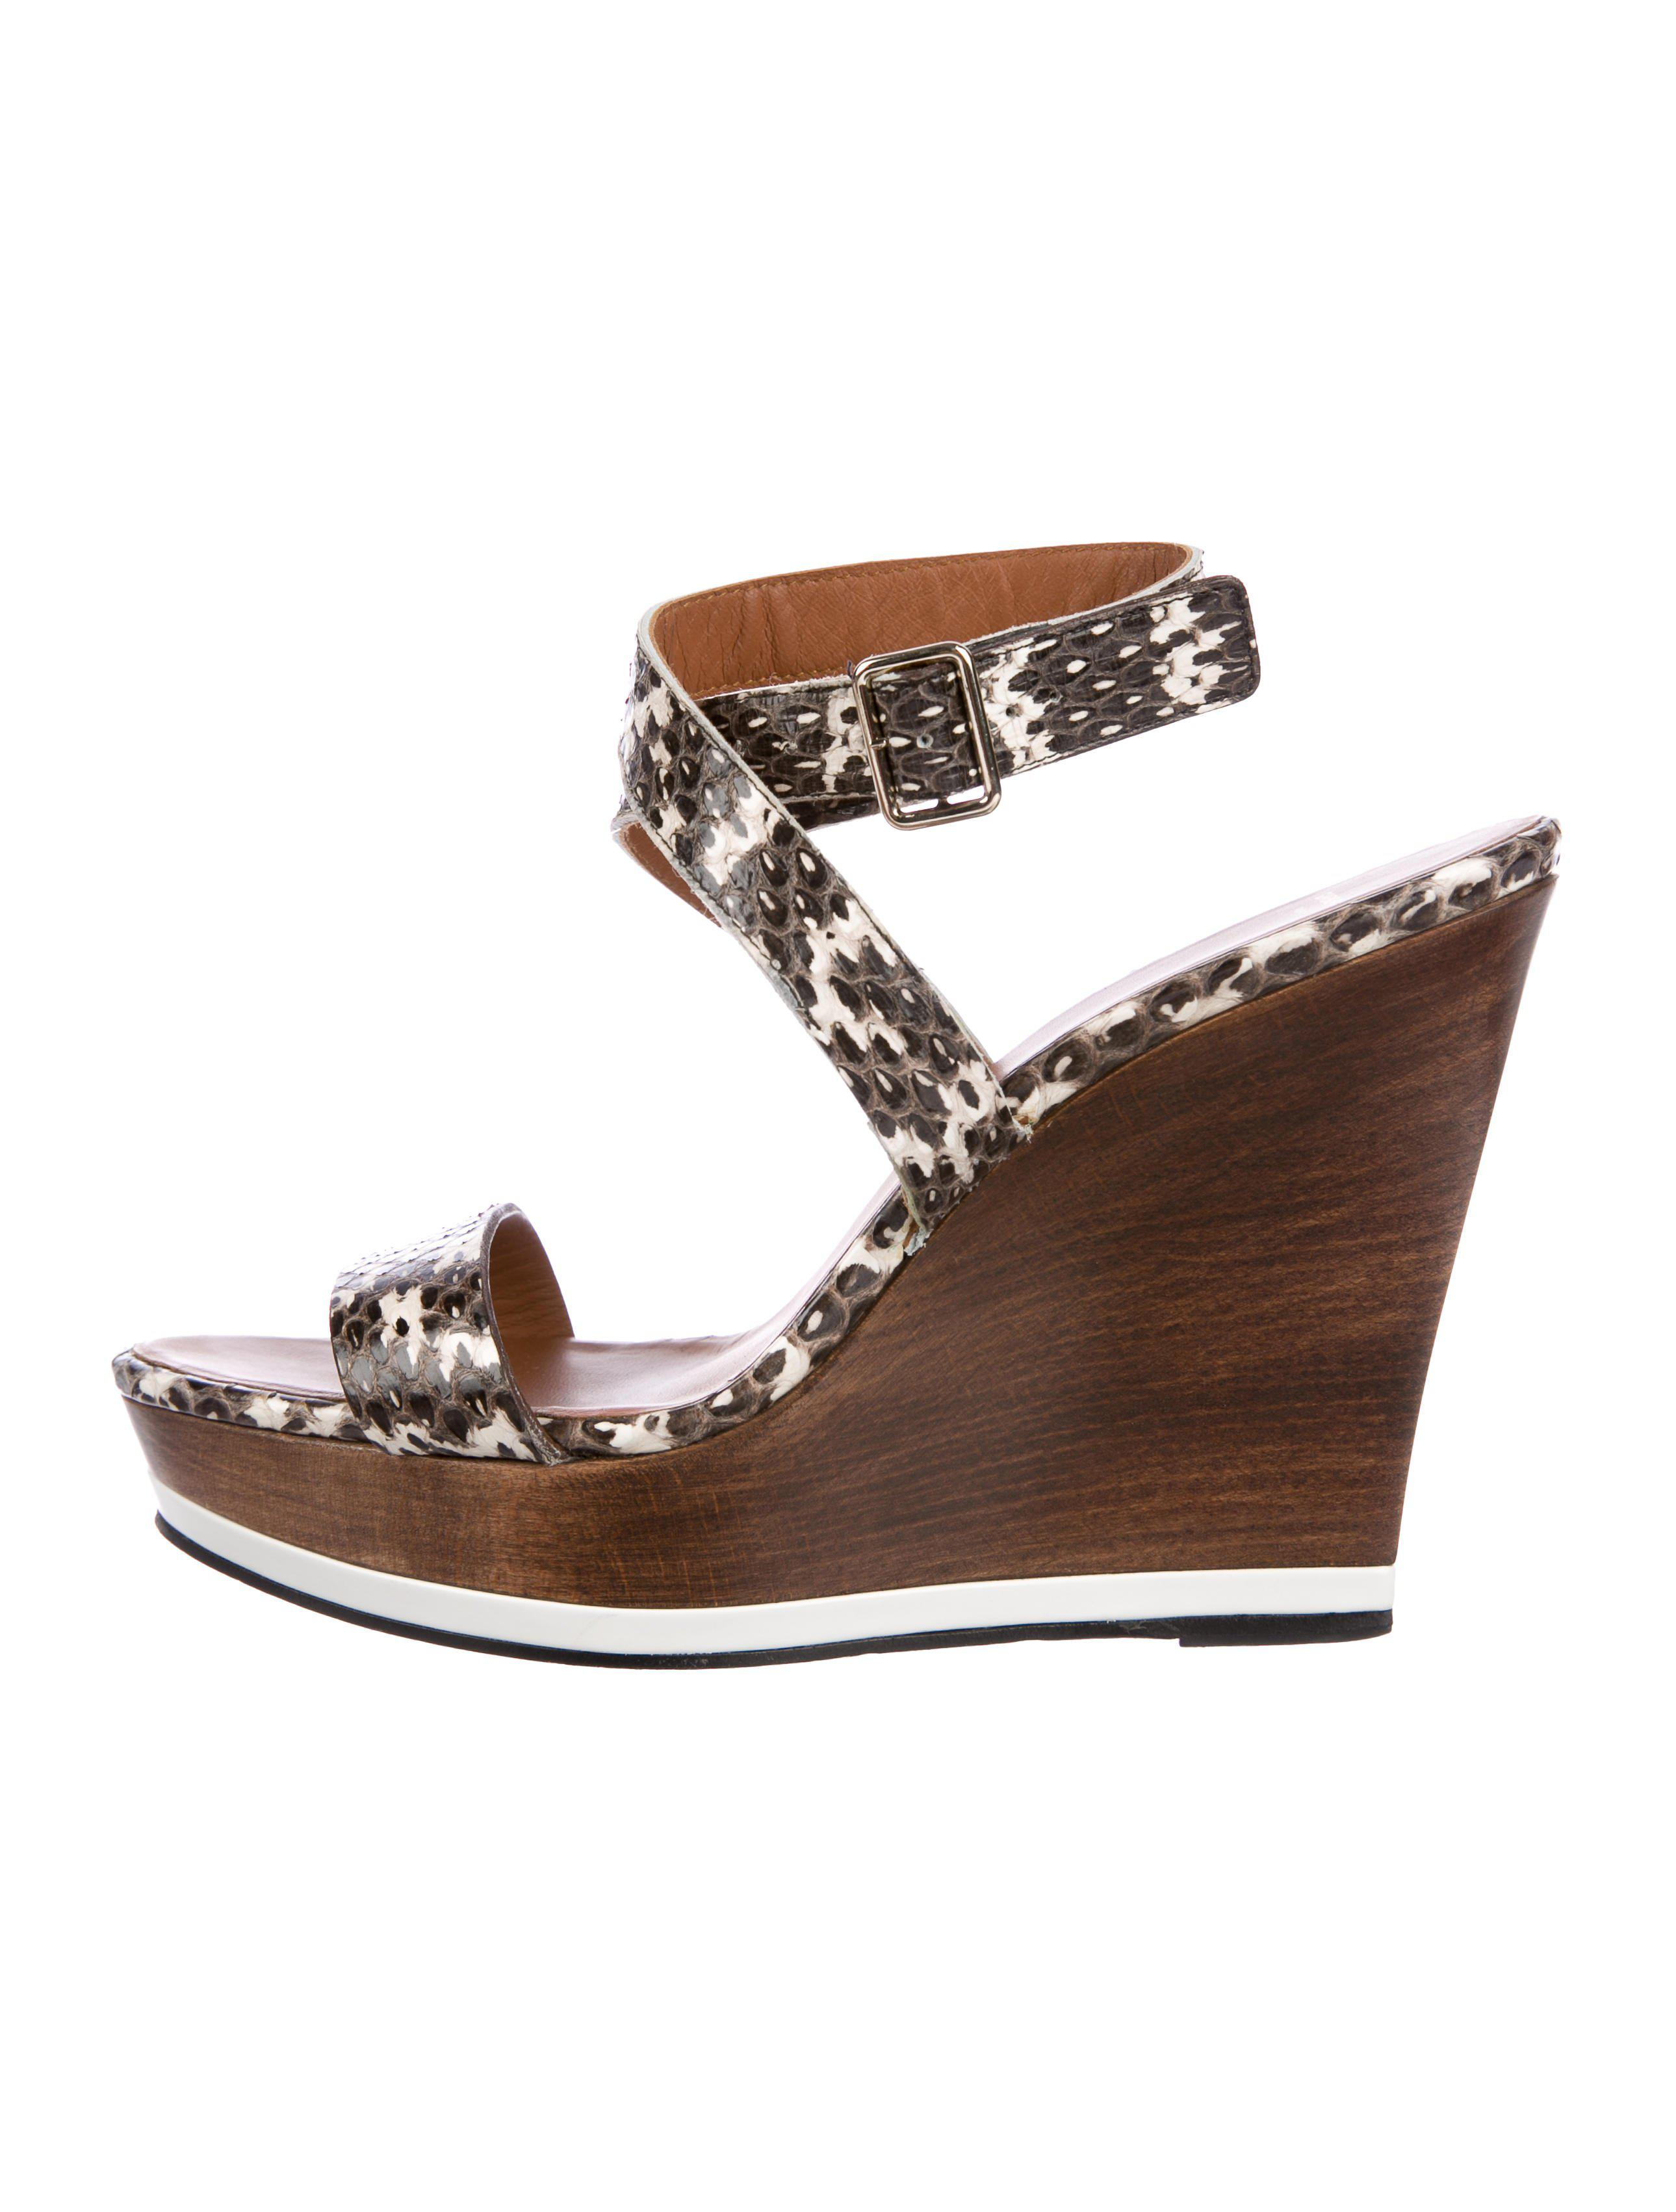 a1676b548e5e Lyst - Givenchy Snakeskin Wedge Sandals Brown in Metallic